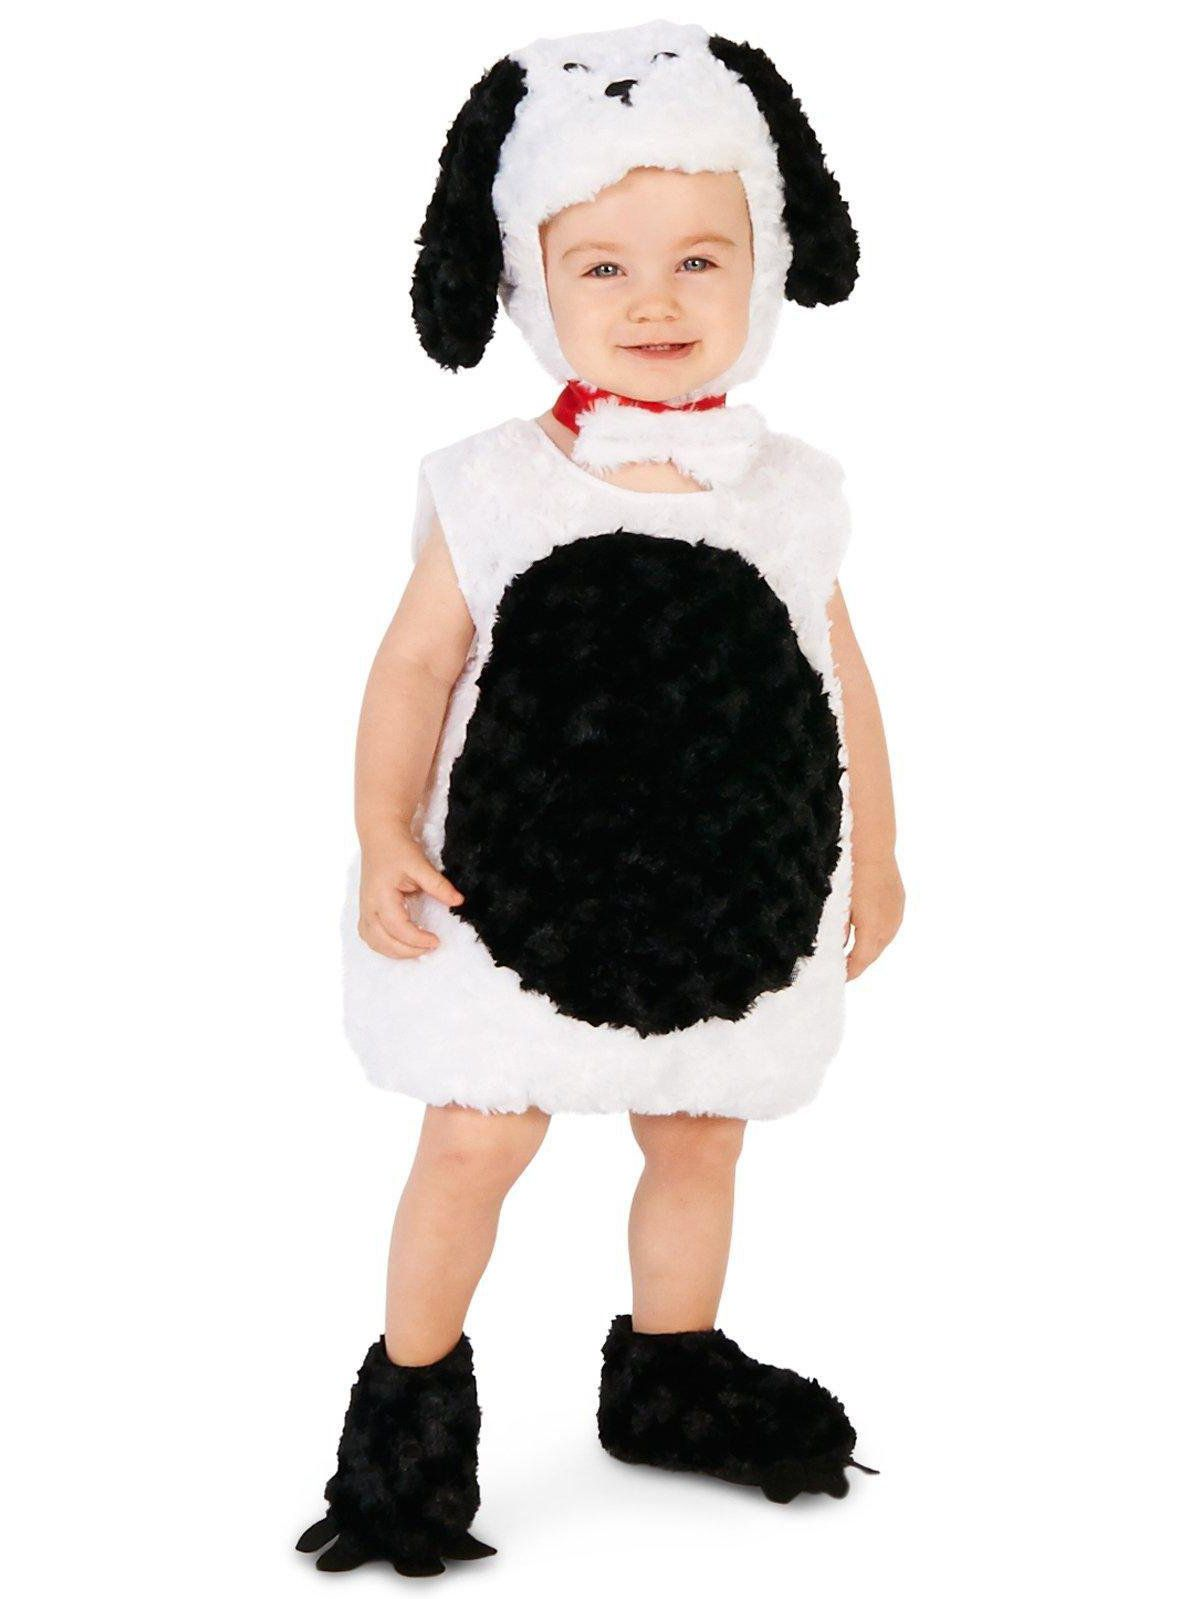 Puppy Costume For Children  sc 1 st  Wholesale Halloween Costumes & Puppy Costume For Children - Baby/Toddler Costumes for 2018 ...